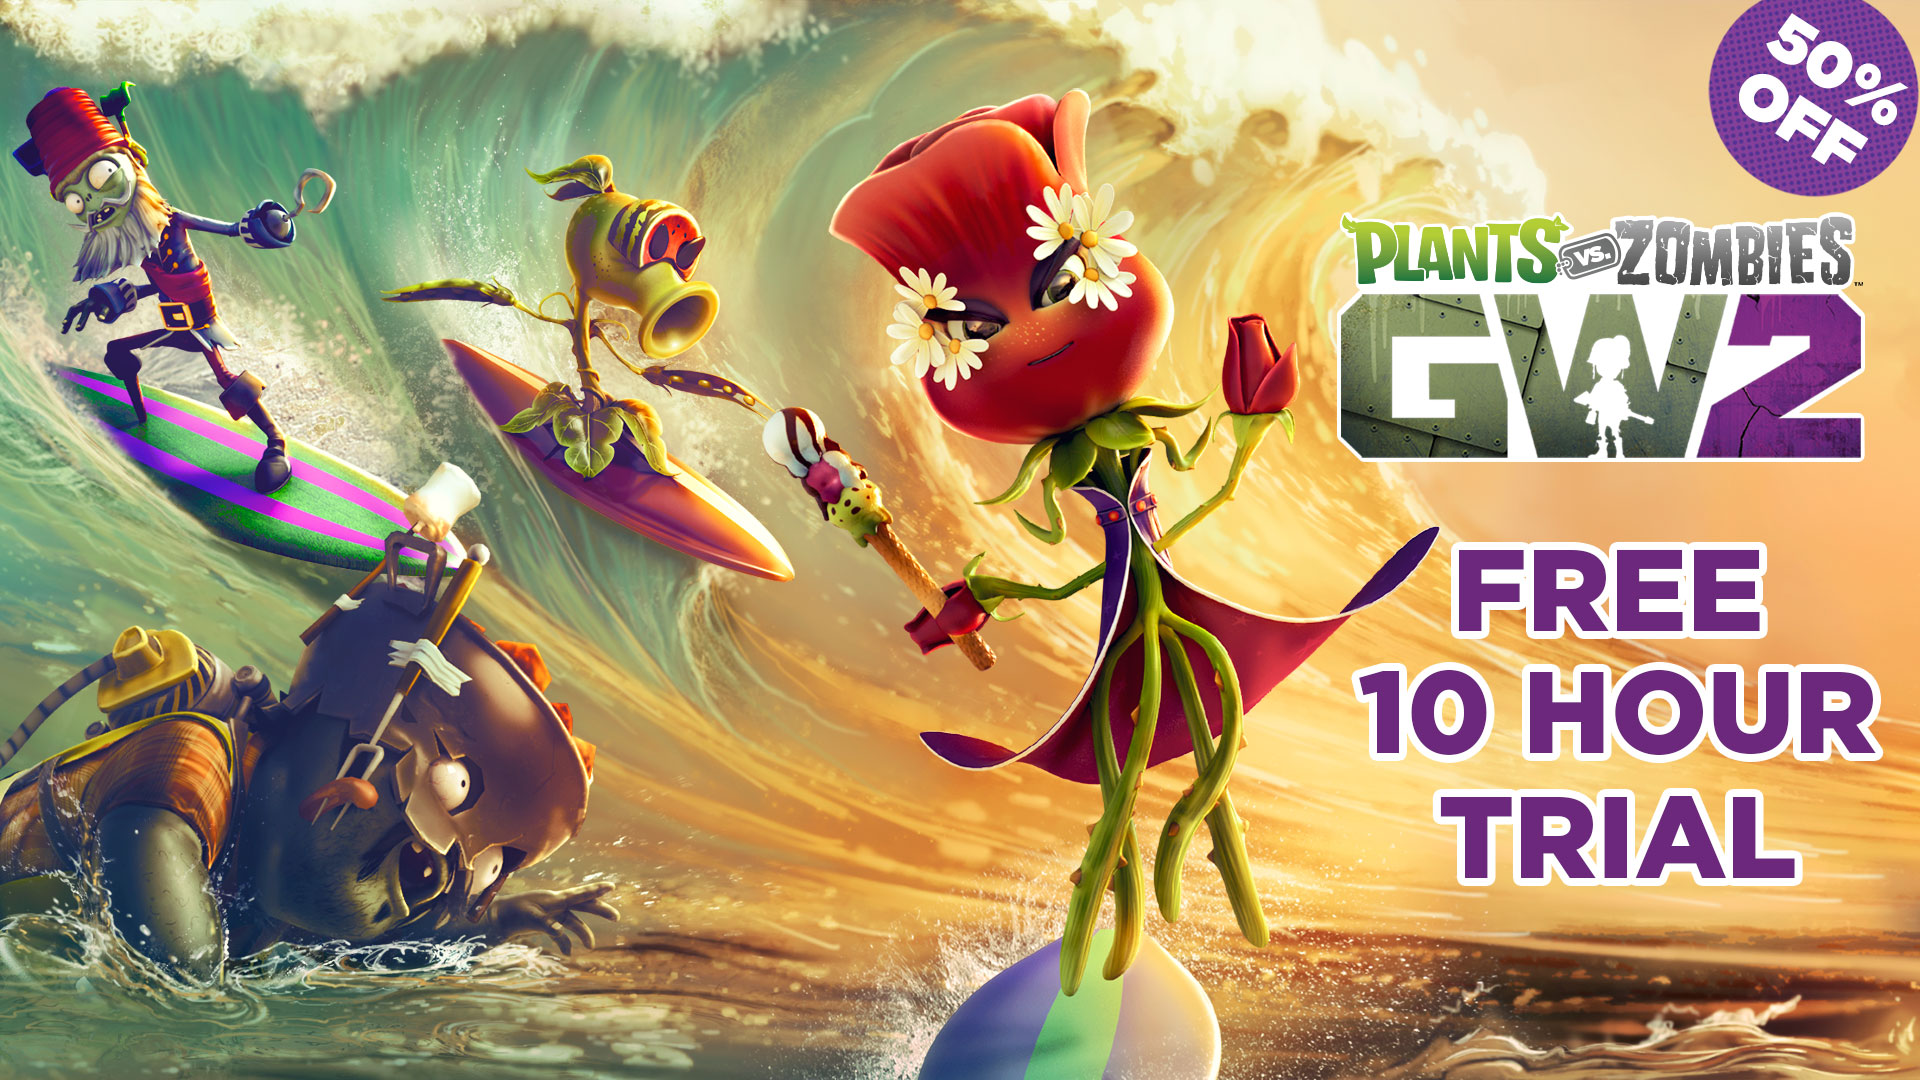 plants vs zombies free download full version pc no trial